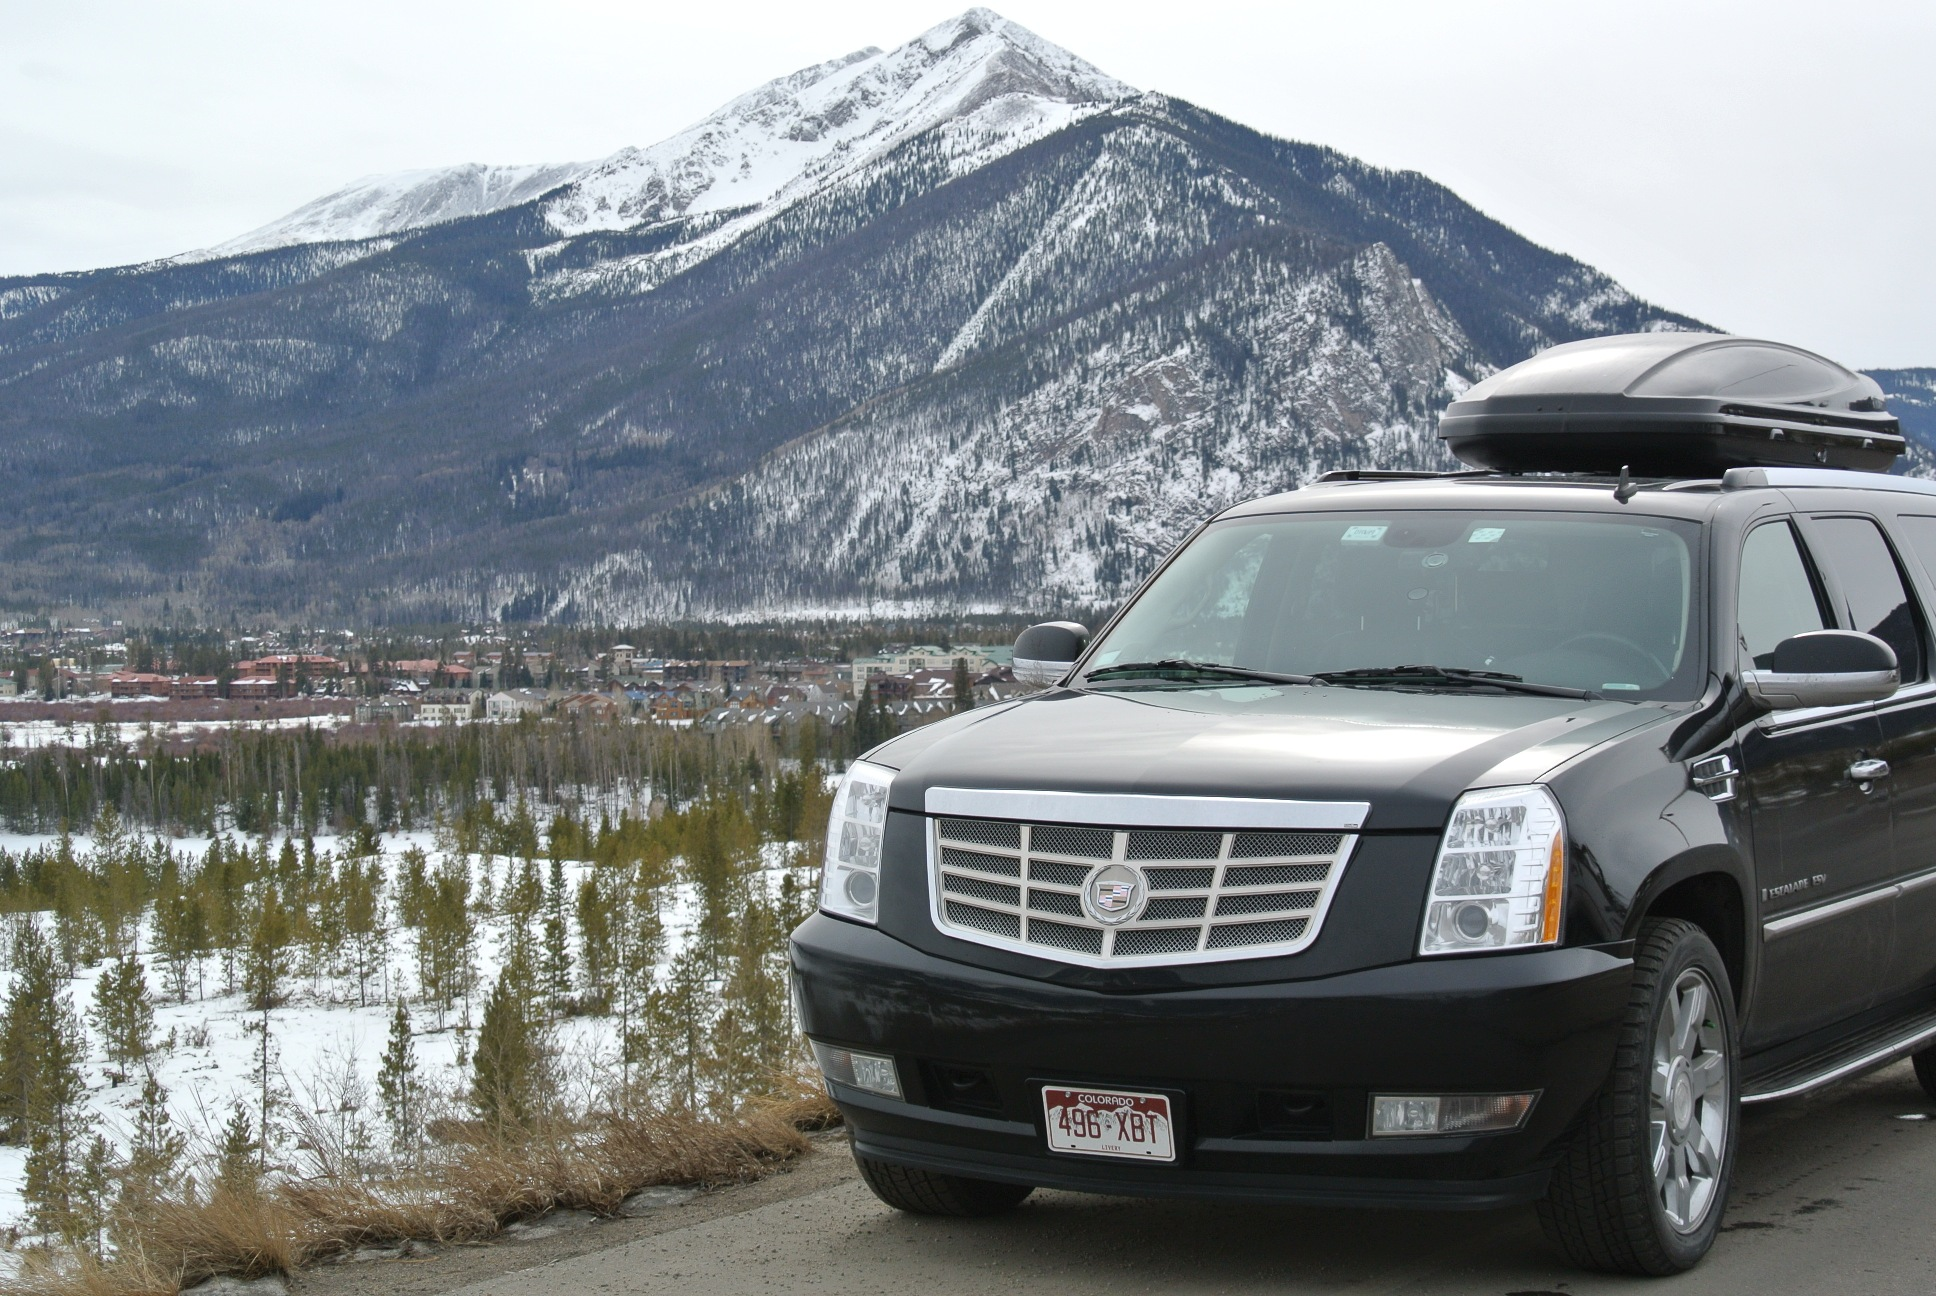 Denver to Vail ground transportation